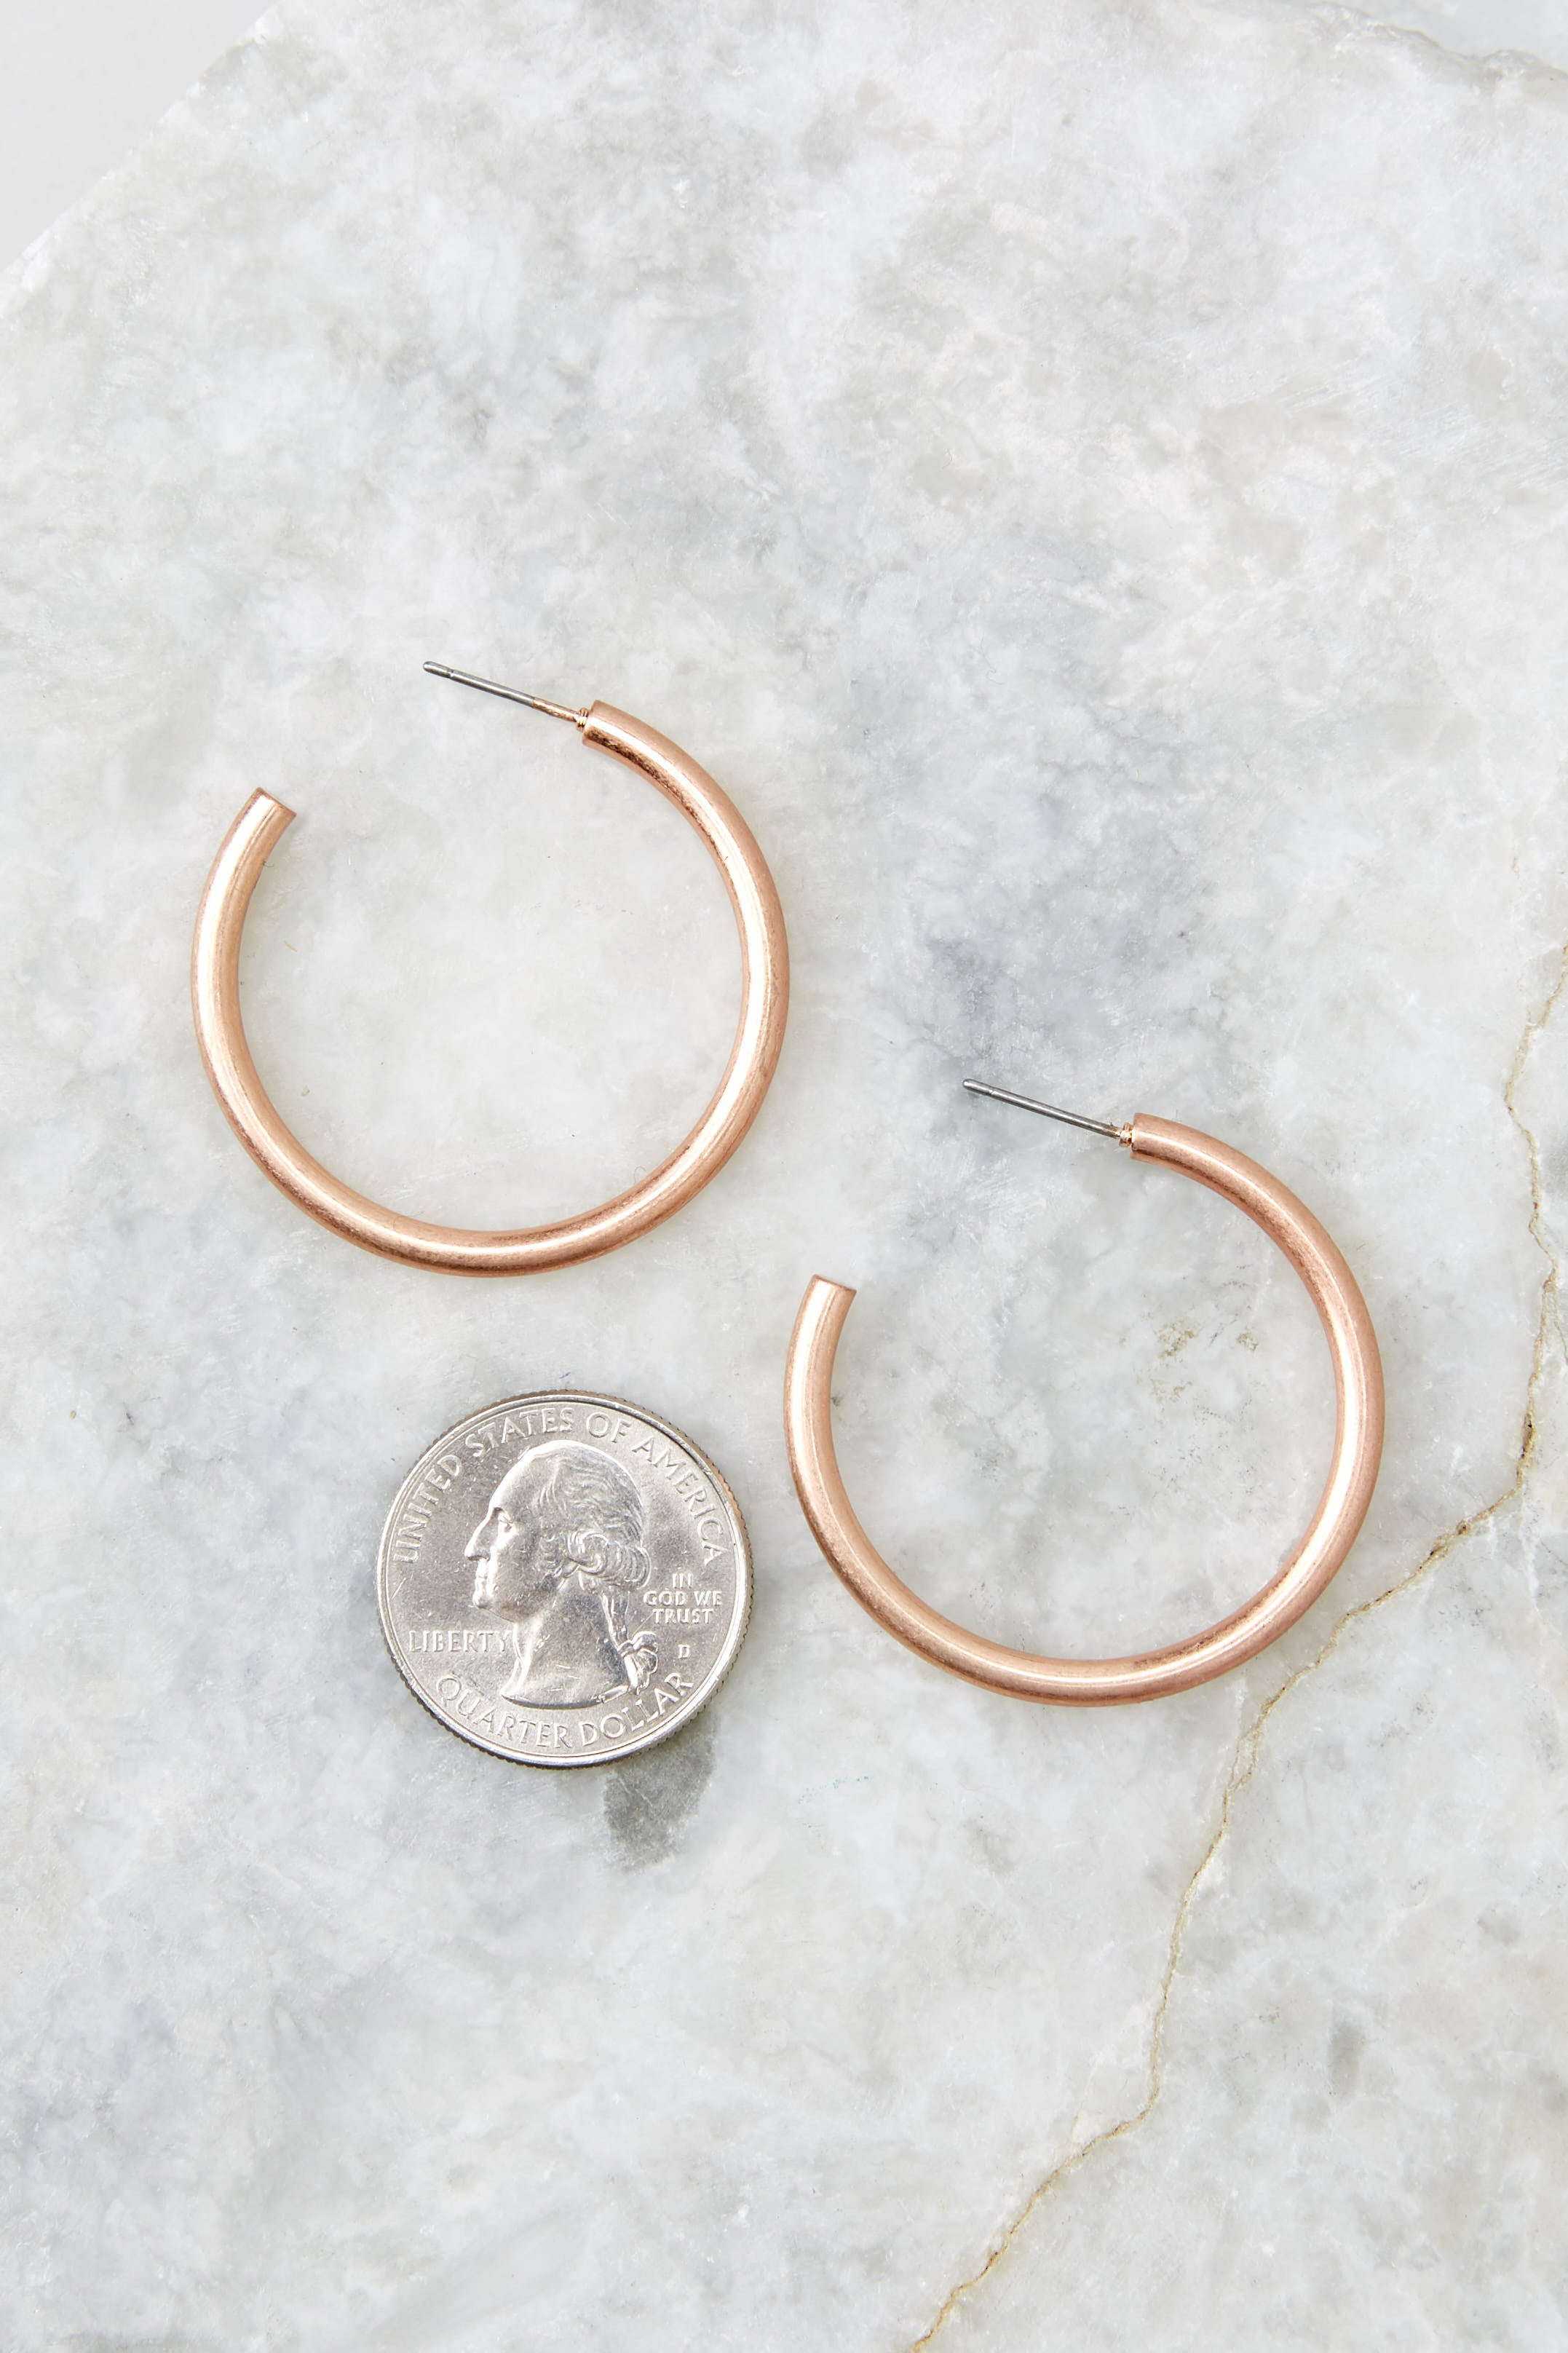 Stylish Blush Rose Gold Hoop Earrings